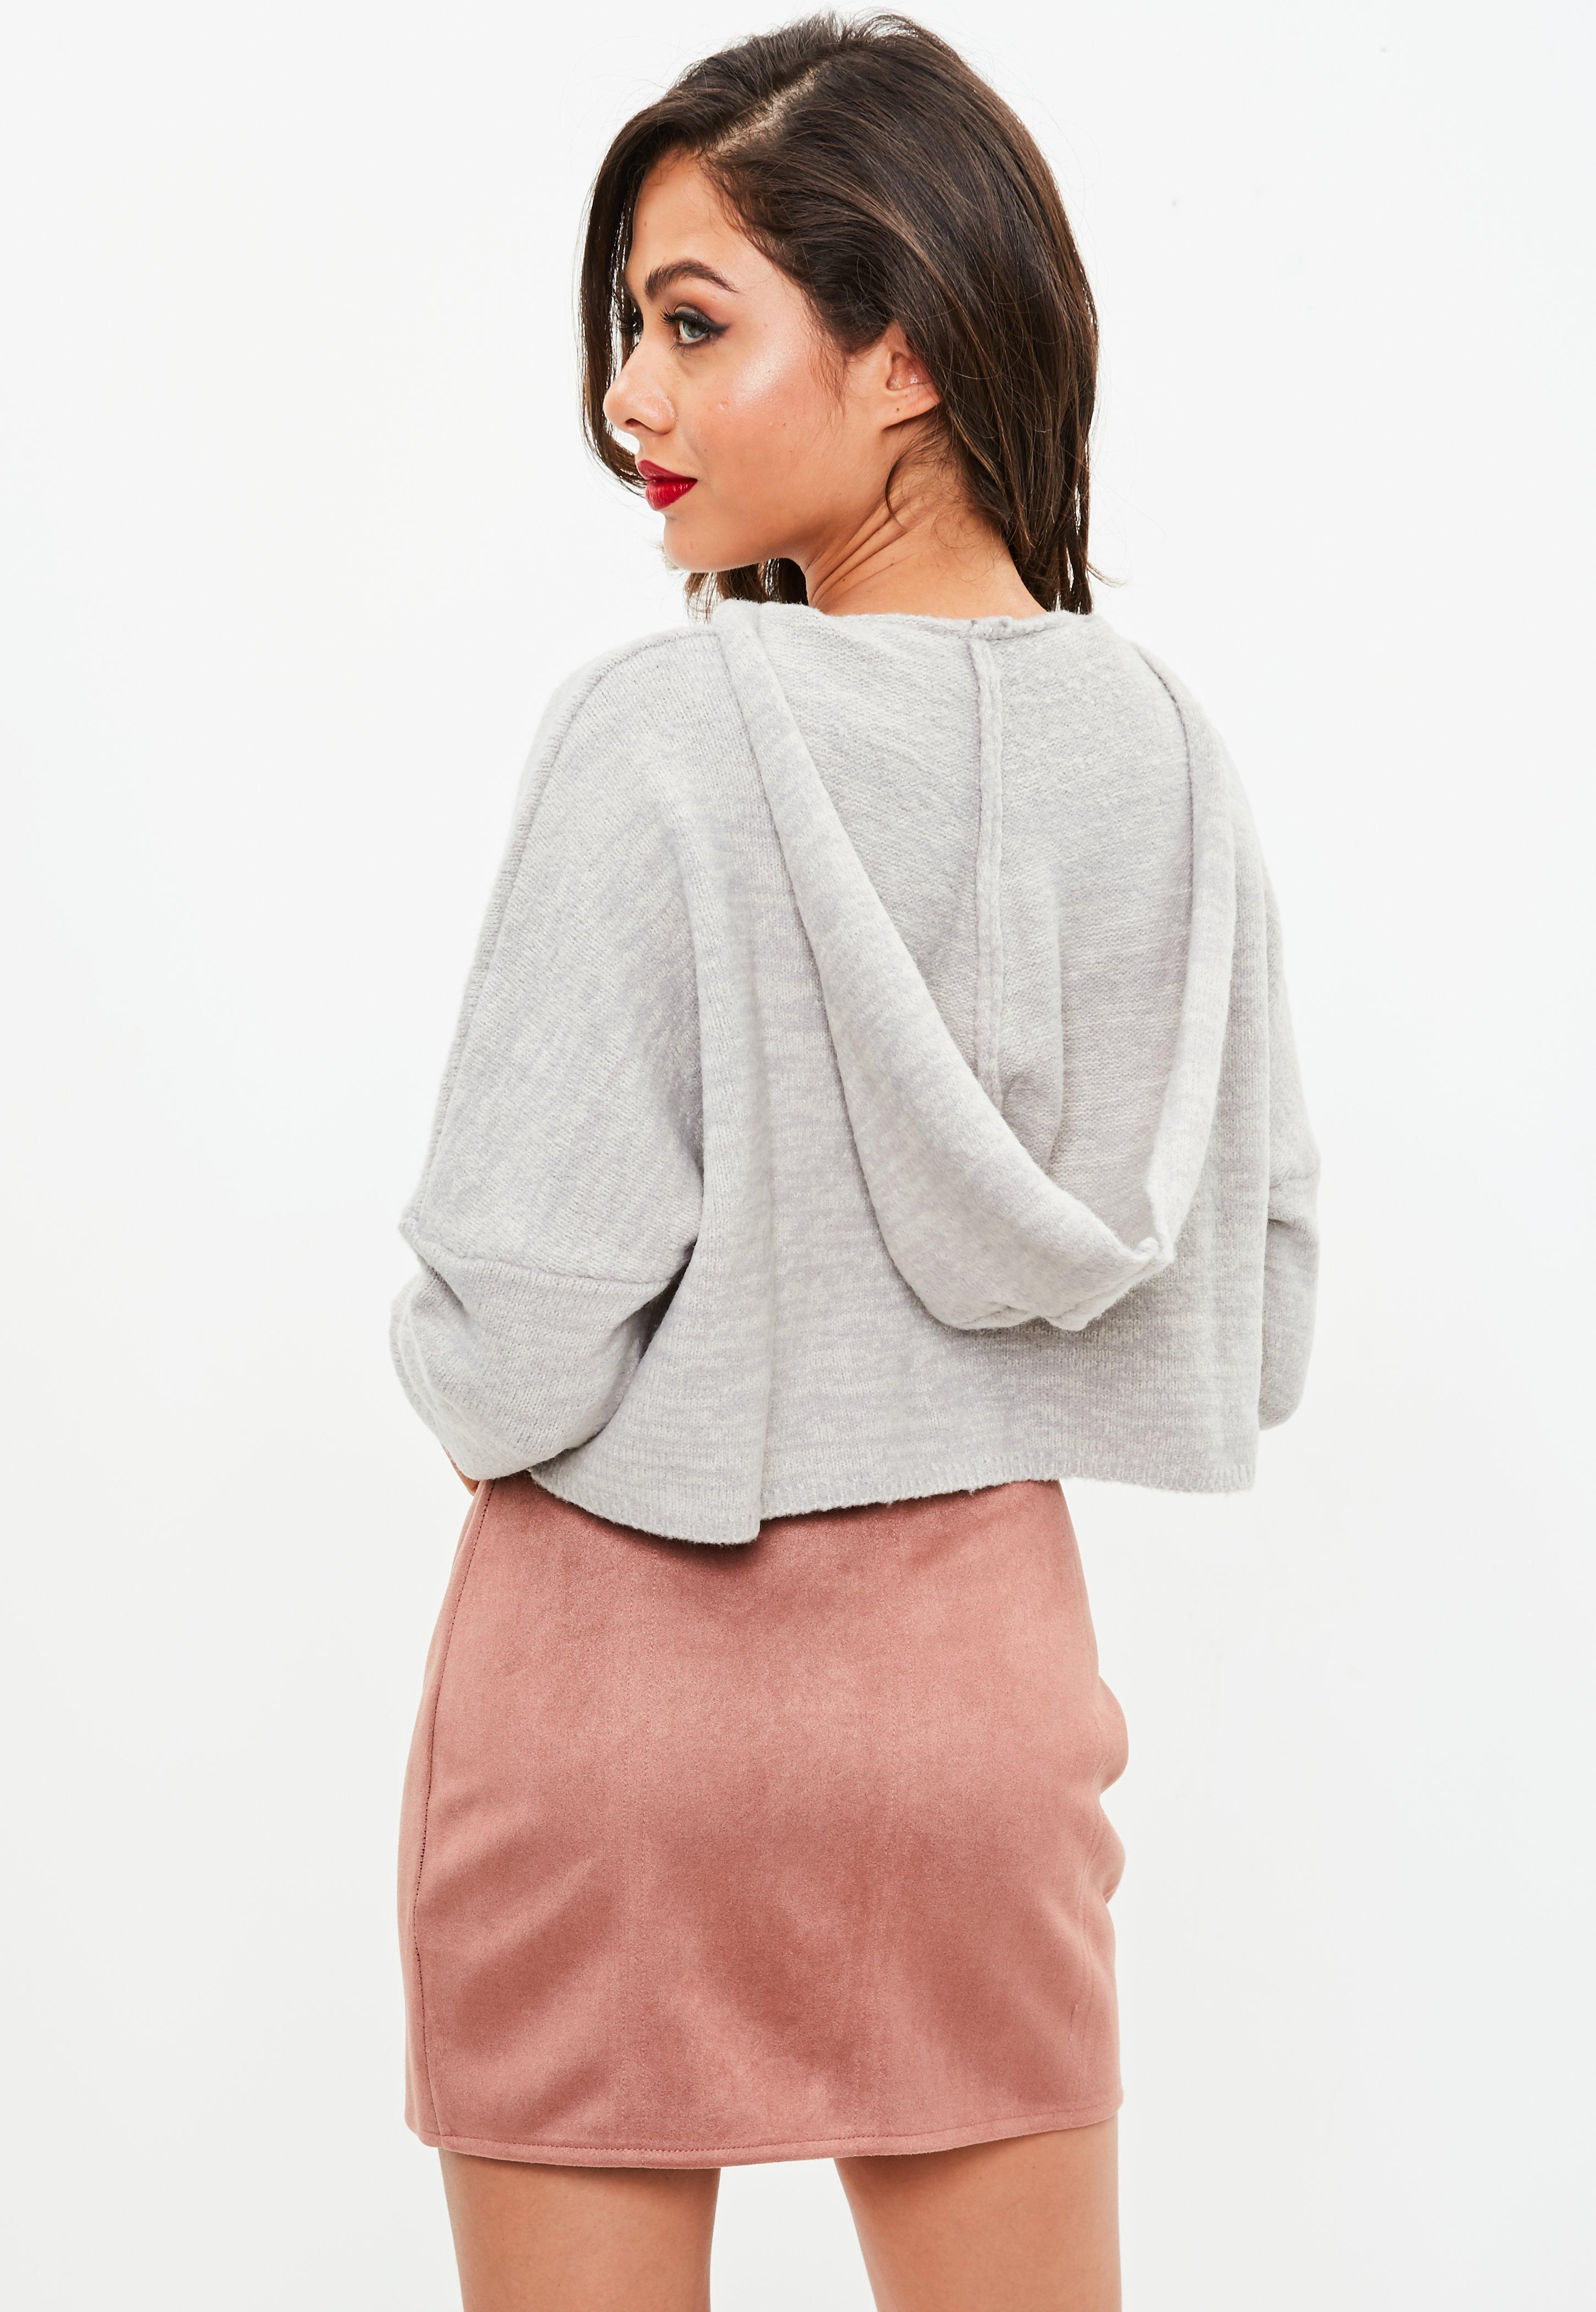 Missguided Hooded Cosy knitted Jumper Best Supplier Outlet Good Selling Footlocker Finishline Cheap Online For Cheap Price Affordable PtaSXsd